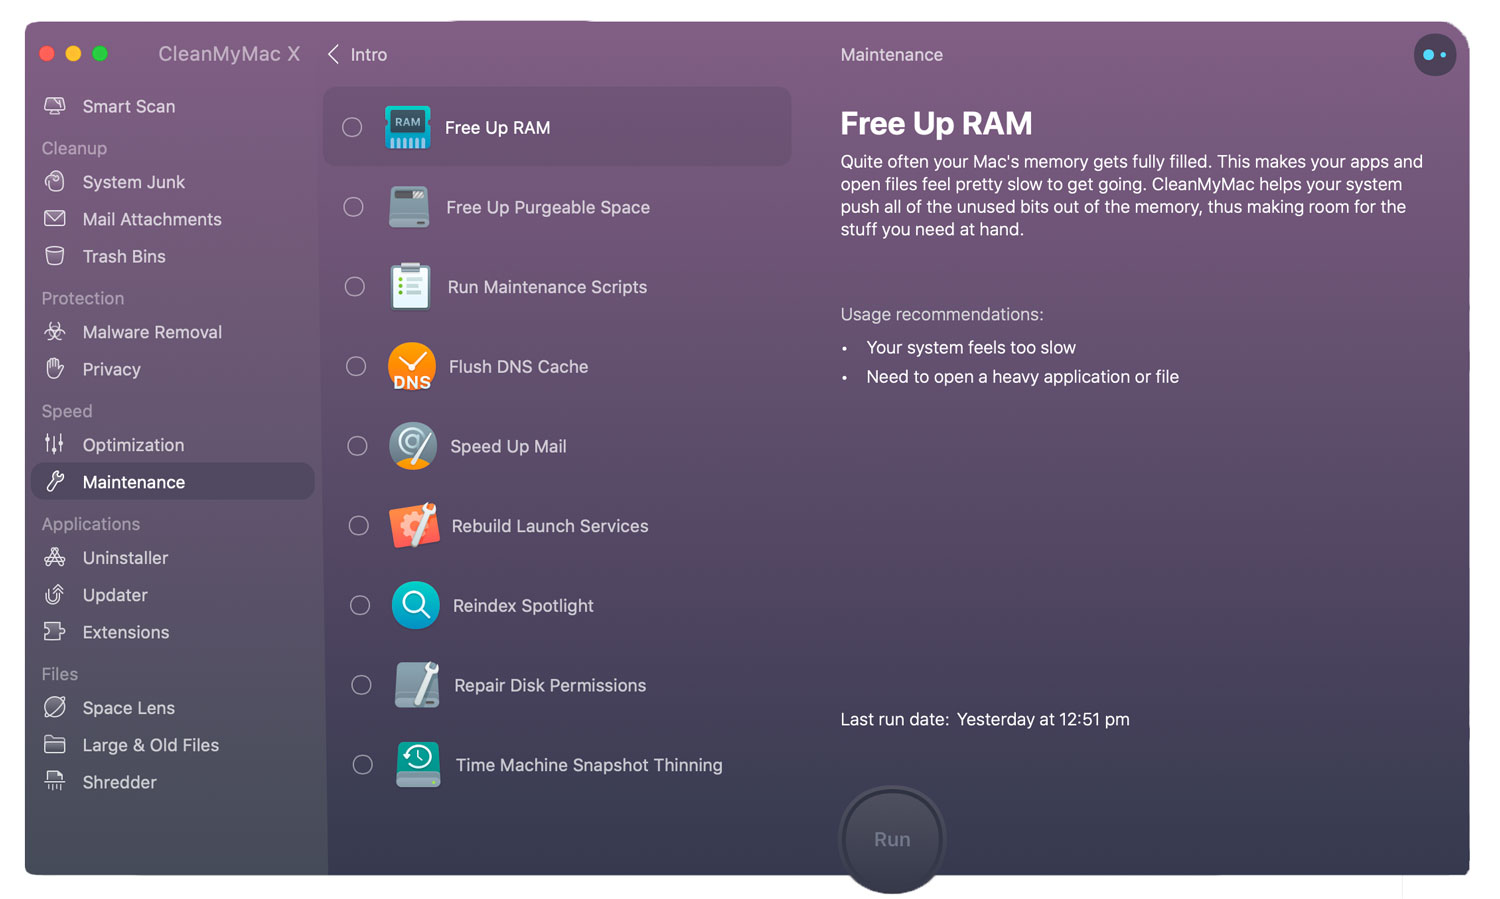 How To Free Up RAM